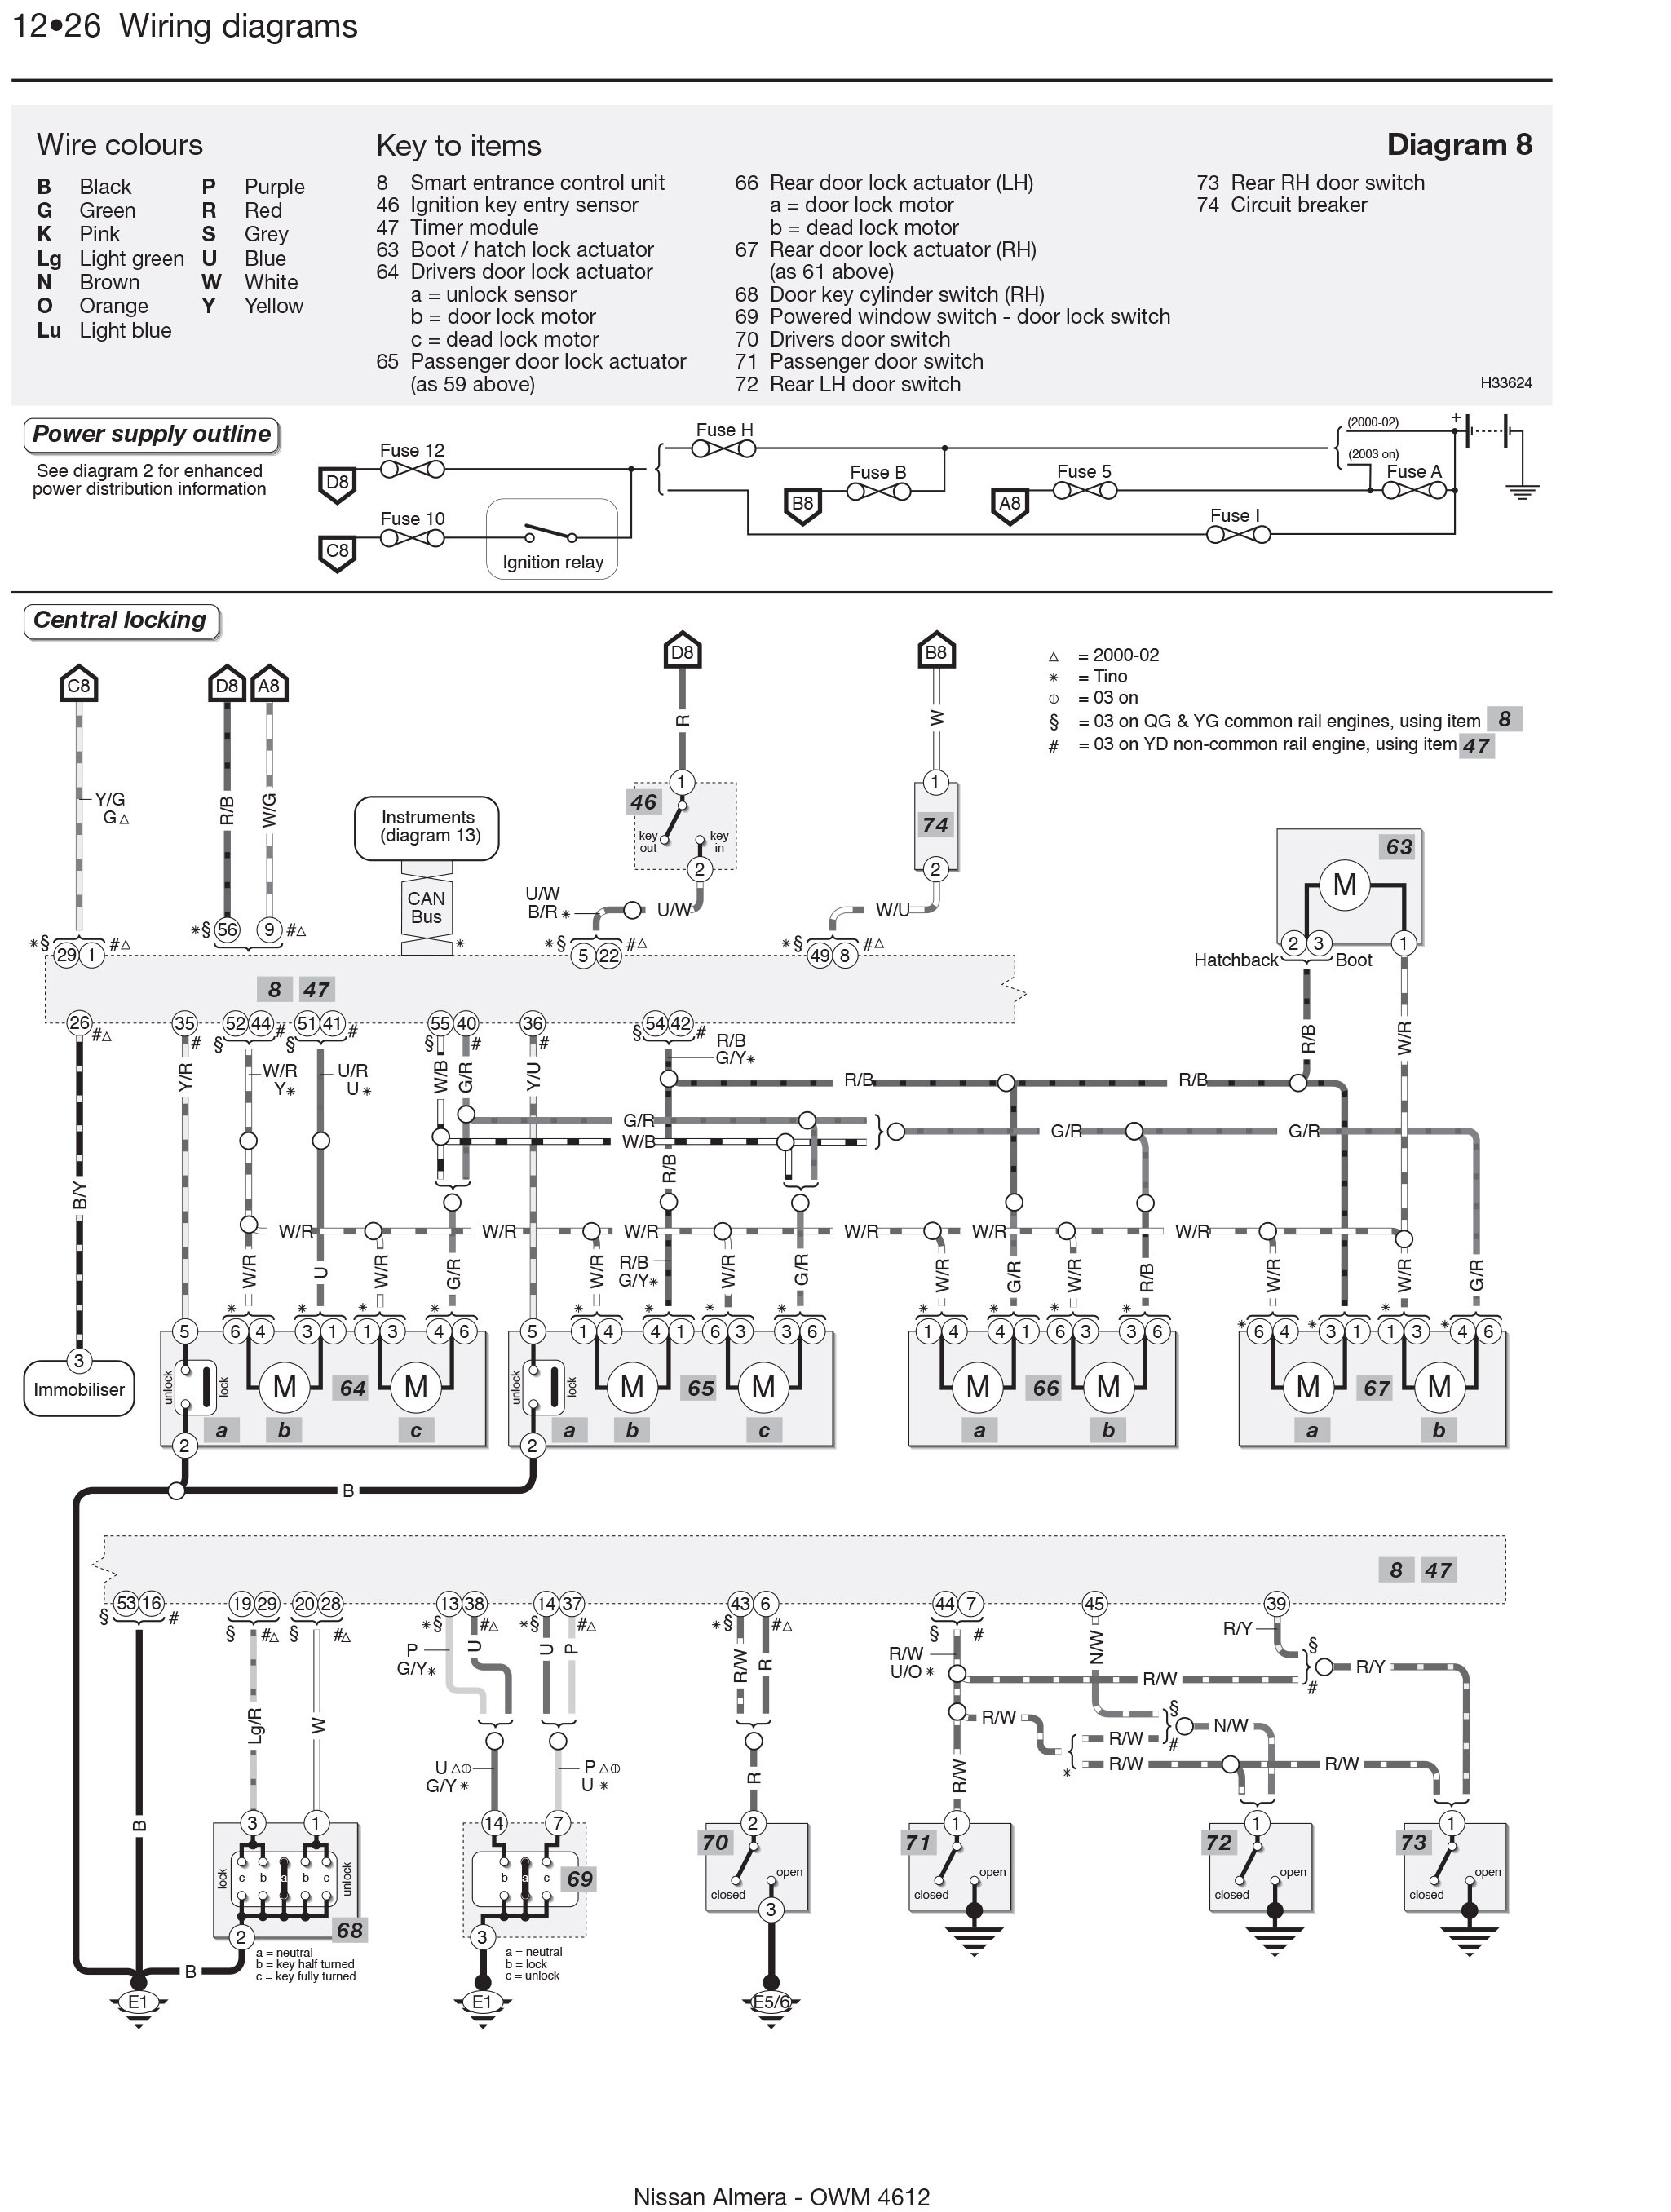 Nissan Almera Engine Diagram Nissan Almera Engine Diagram Nissan Almera Tino Petrol Feb 00 07 Of Nissan Almera Engine Diagram